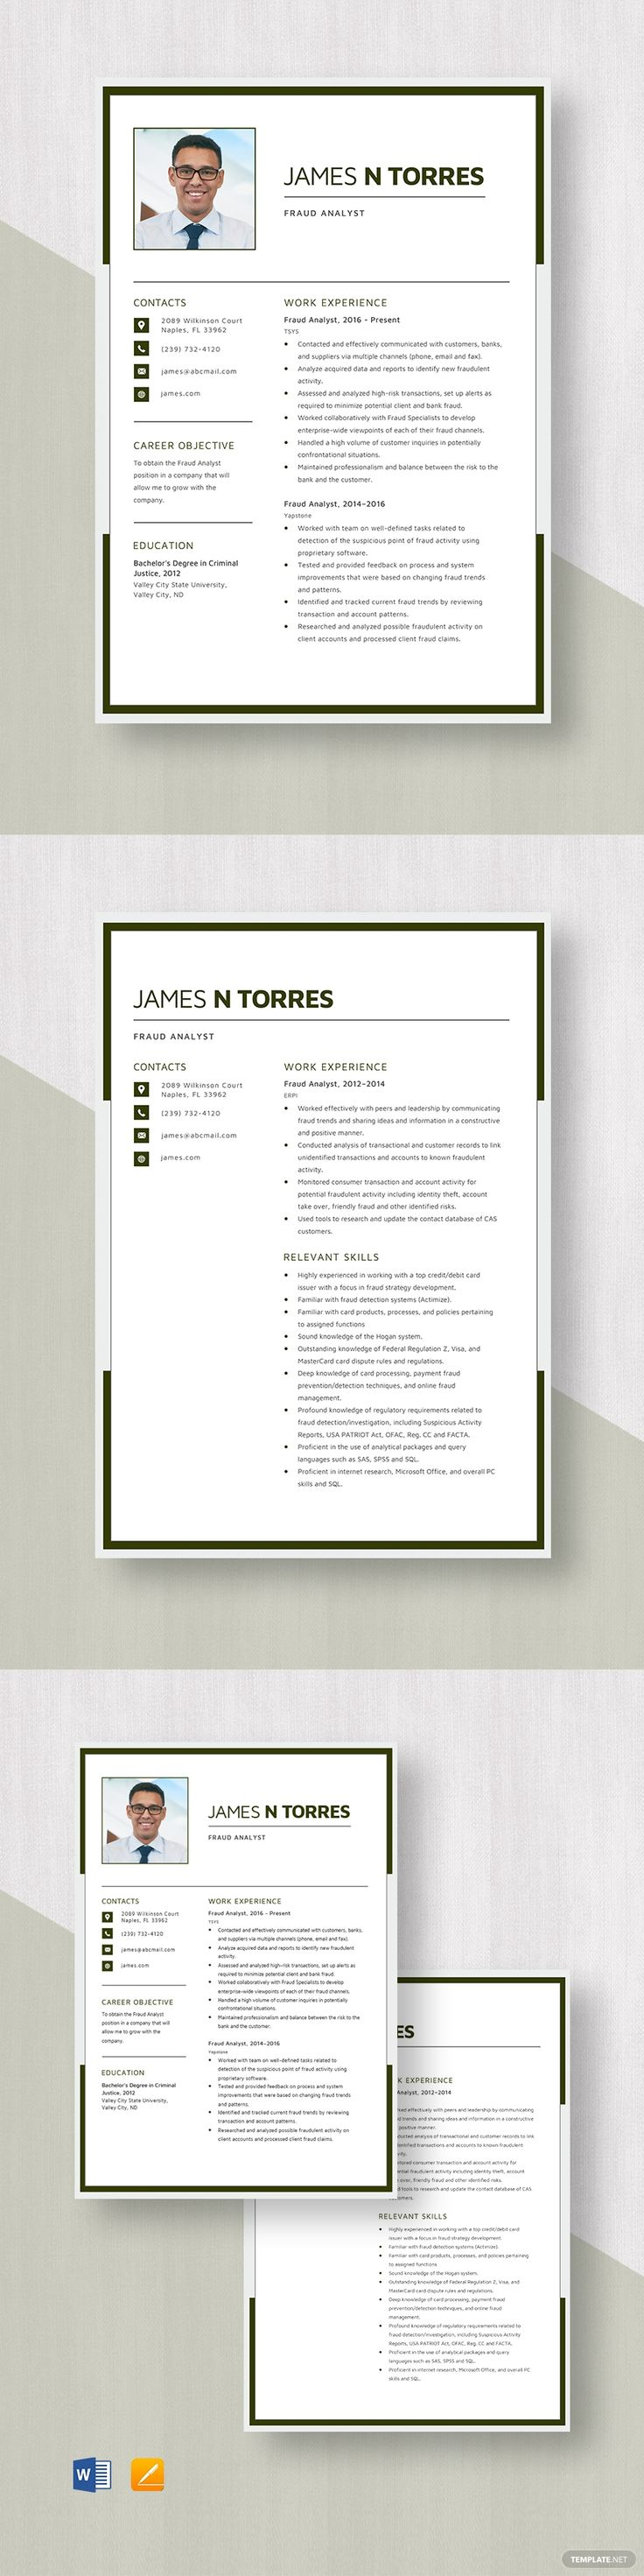 Fraud analyst resume template in 2020 resume template